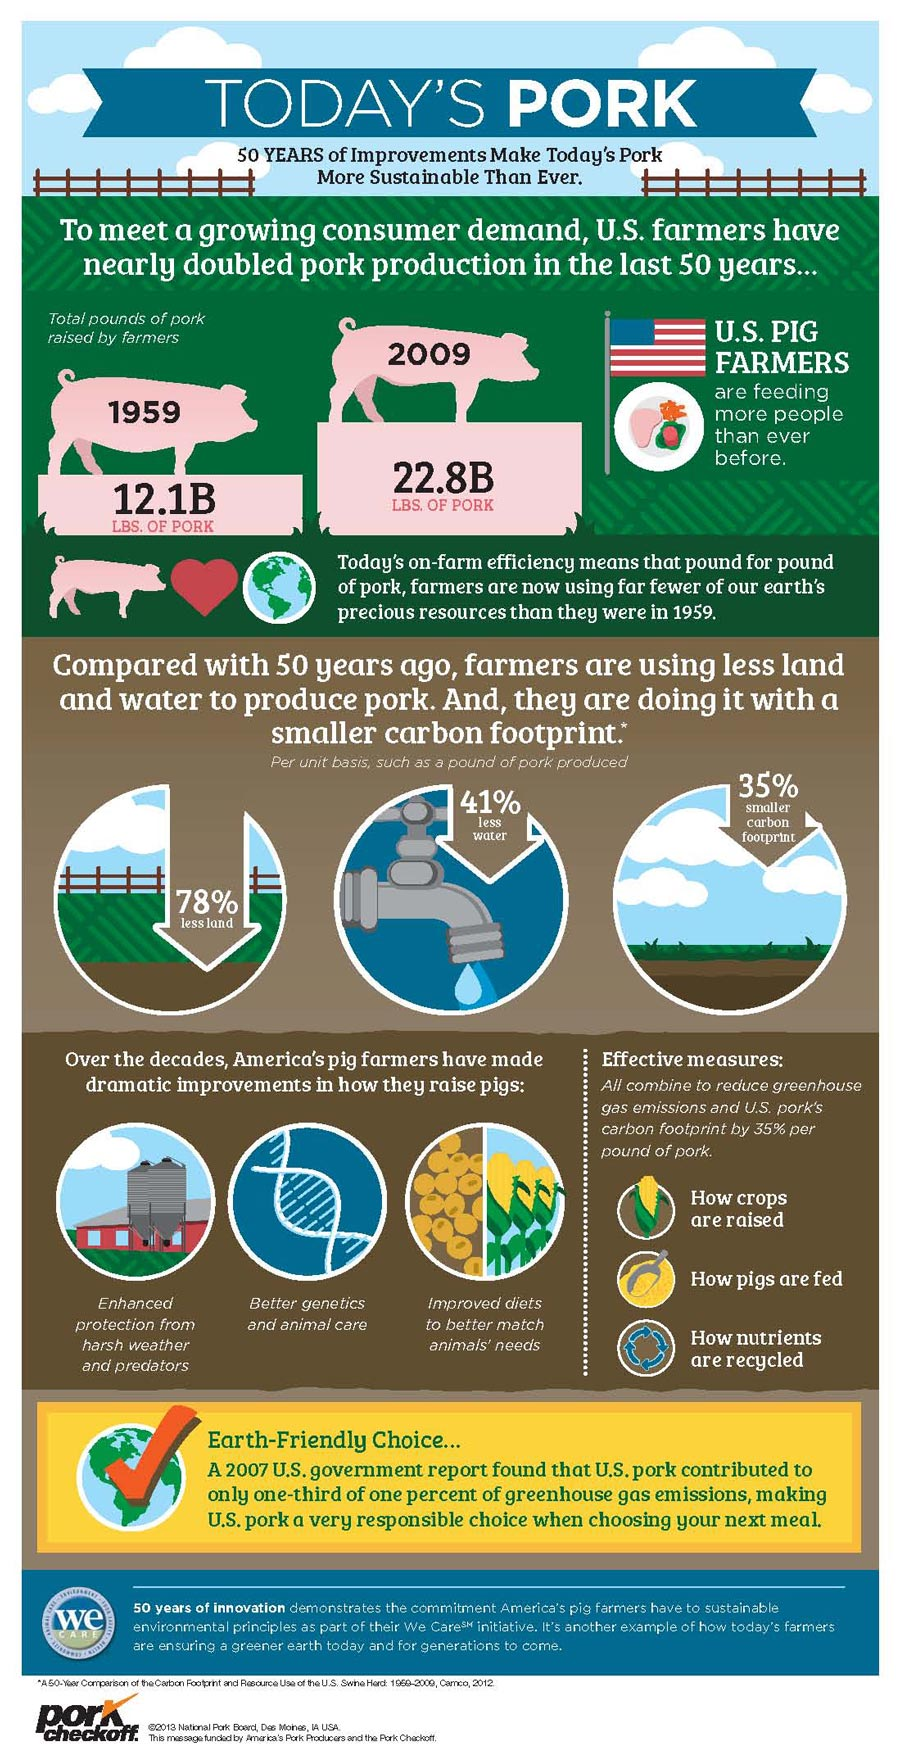 Fun facts about how farming has improved over the years.